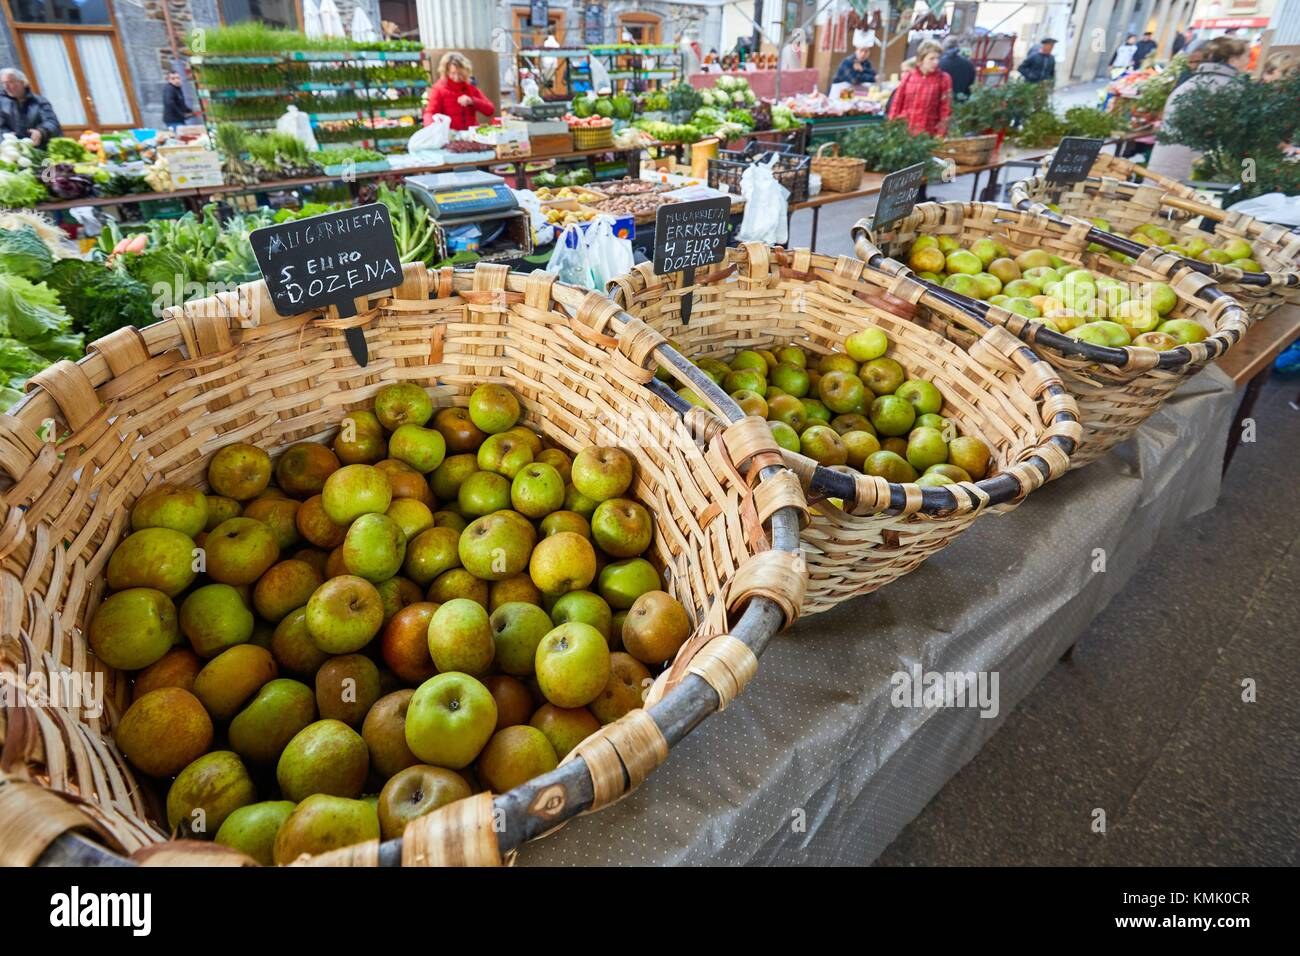 Apple Reineta, Ordizia Market, Special Christmas market, Ordizia, Gipuzkoa, Basque Country, Spain, Europe - Stock Image